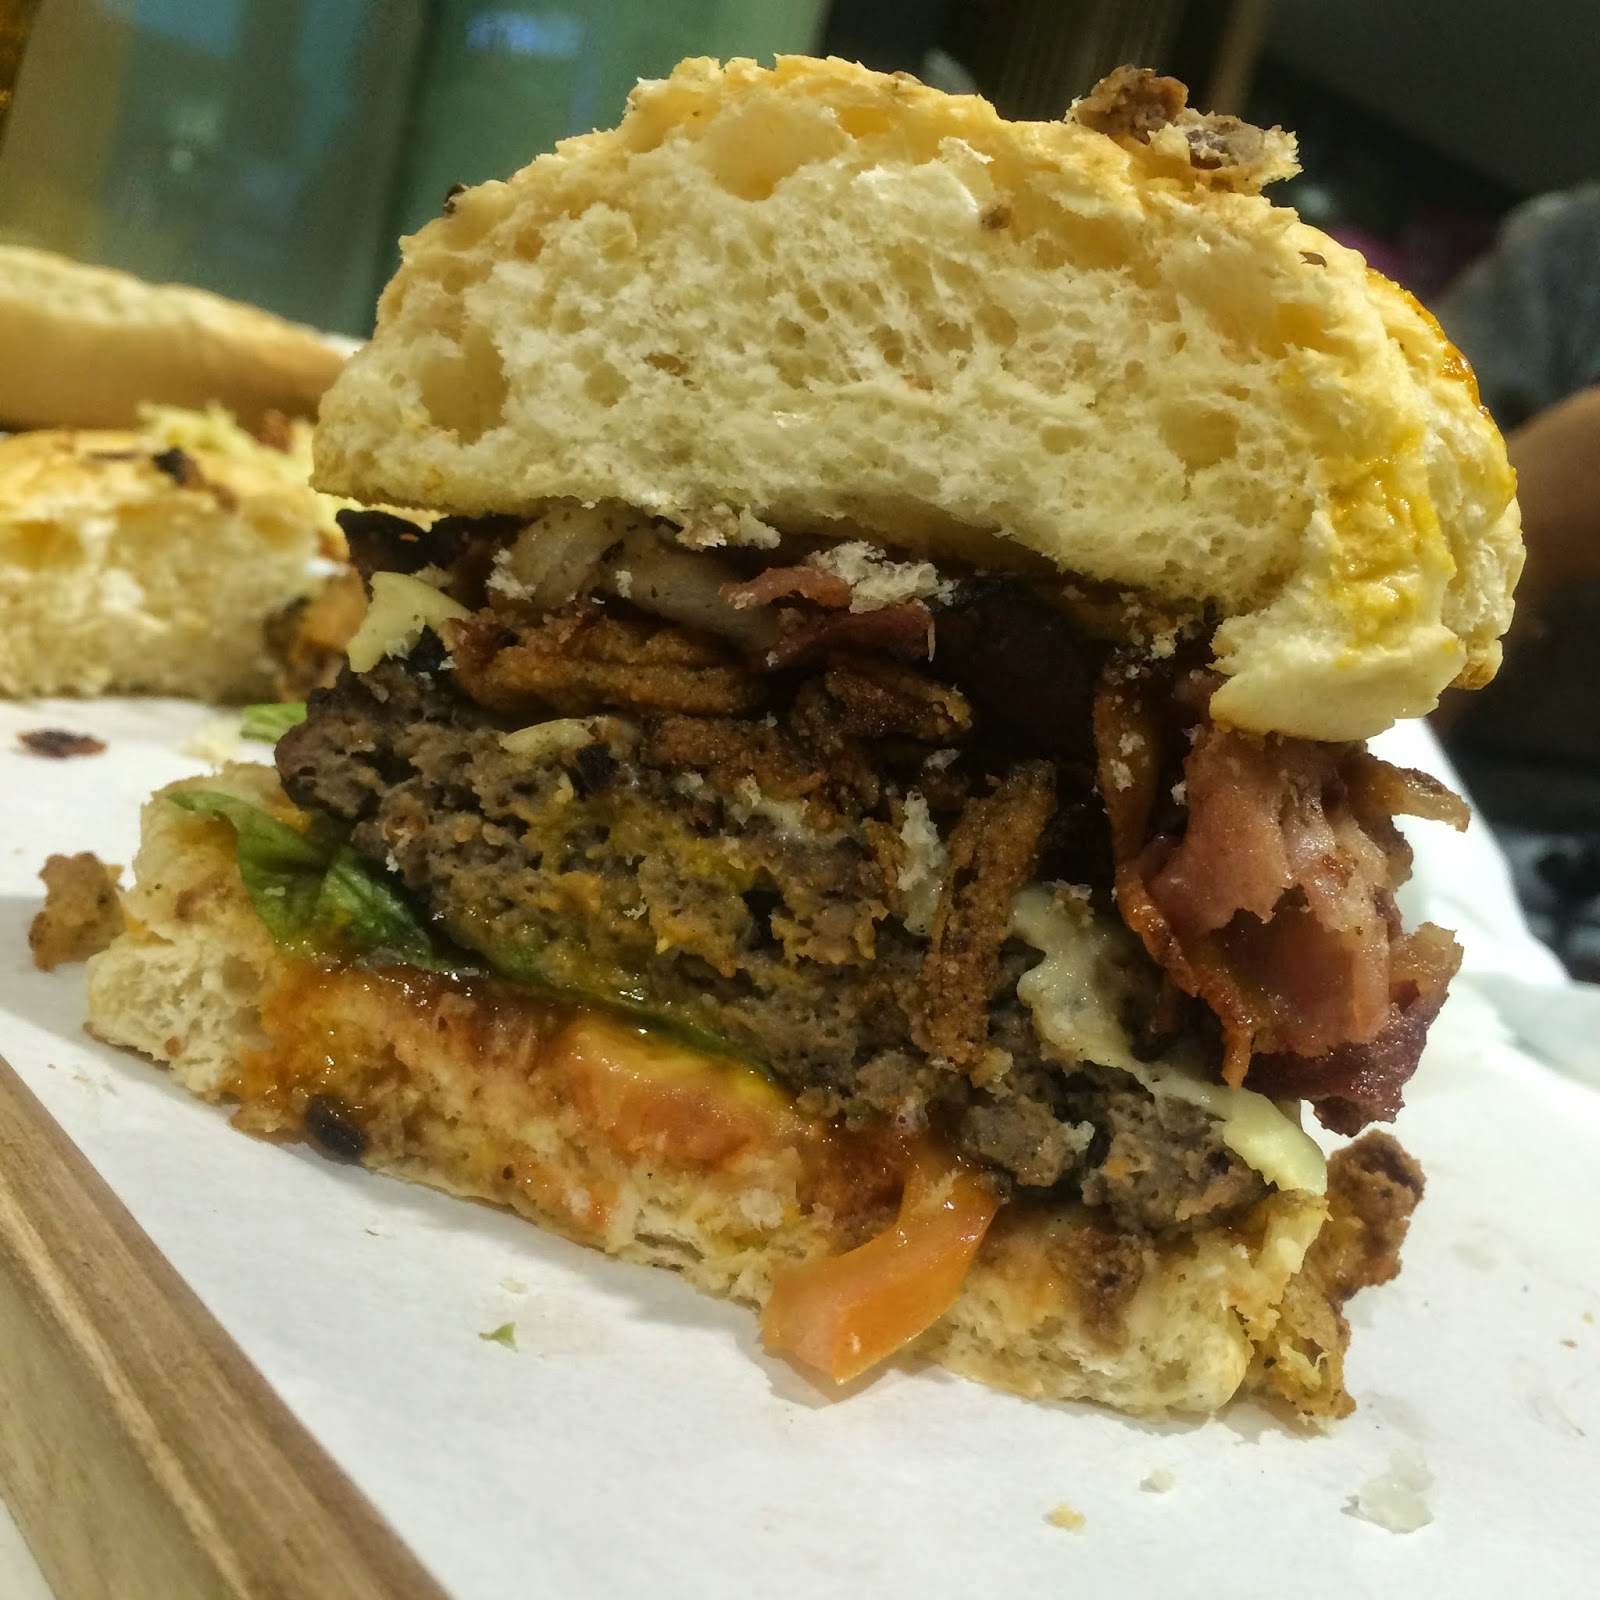 Nines vs Food - Wham! Burgers and Sausages-5.jpg